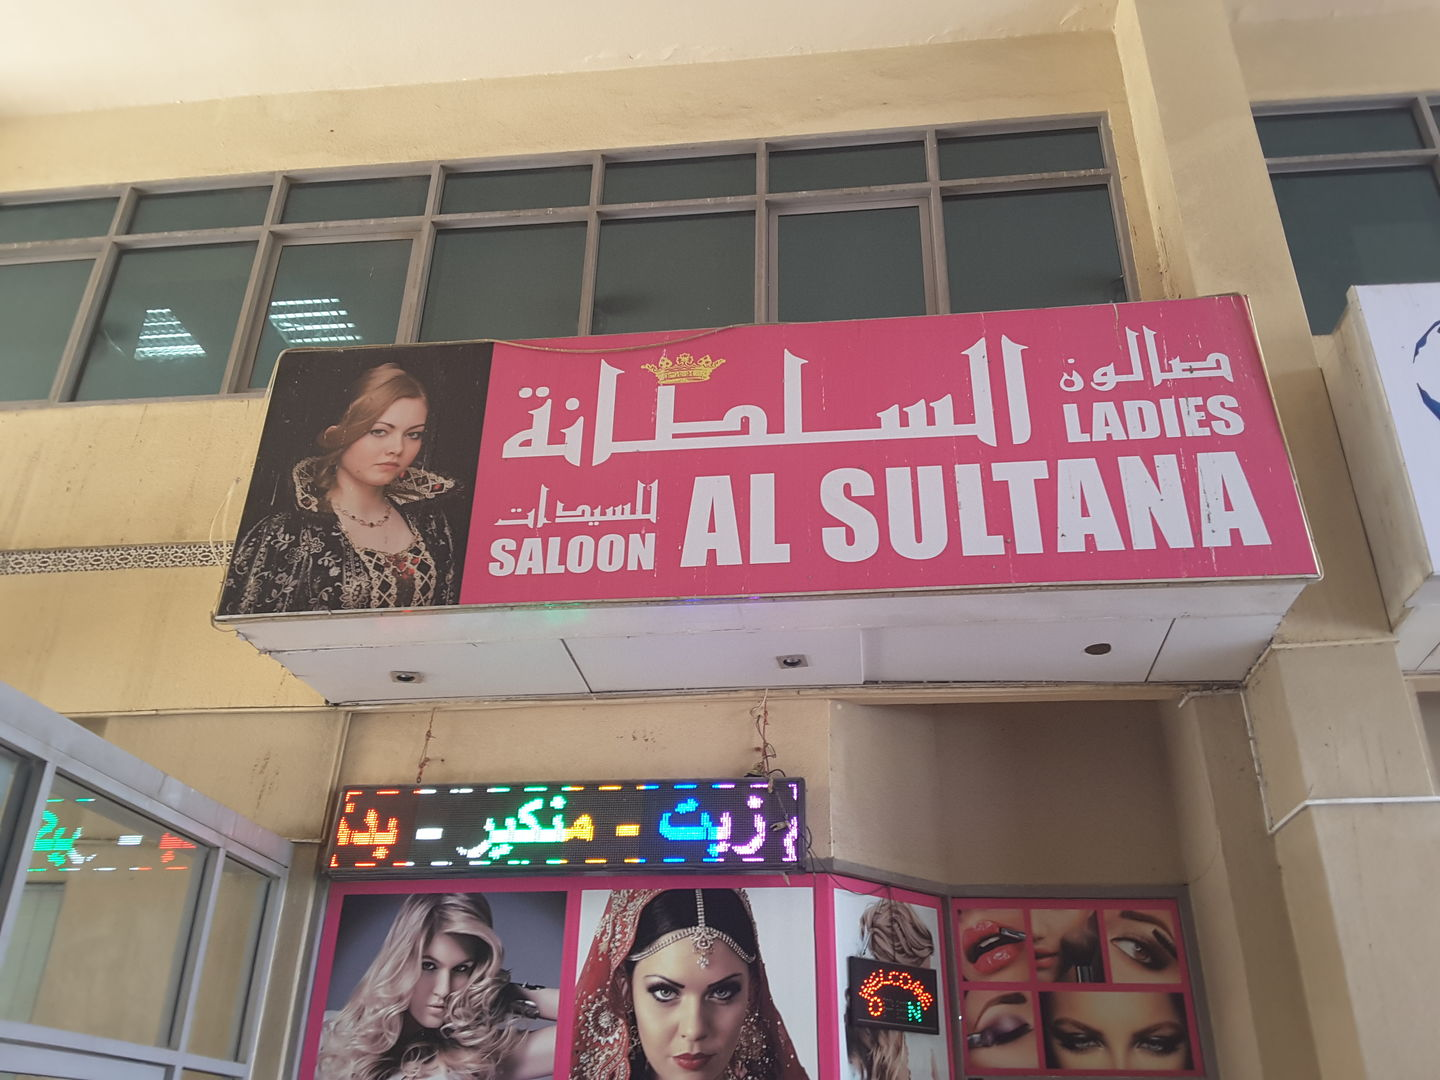 HiDubai-business-al-sultana-ladies-saloon-beauty-wellness-health-beauty-salons-al-khabaisi-dubai-2